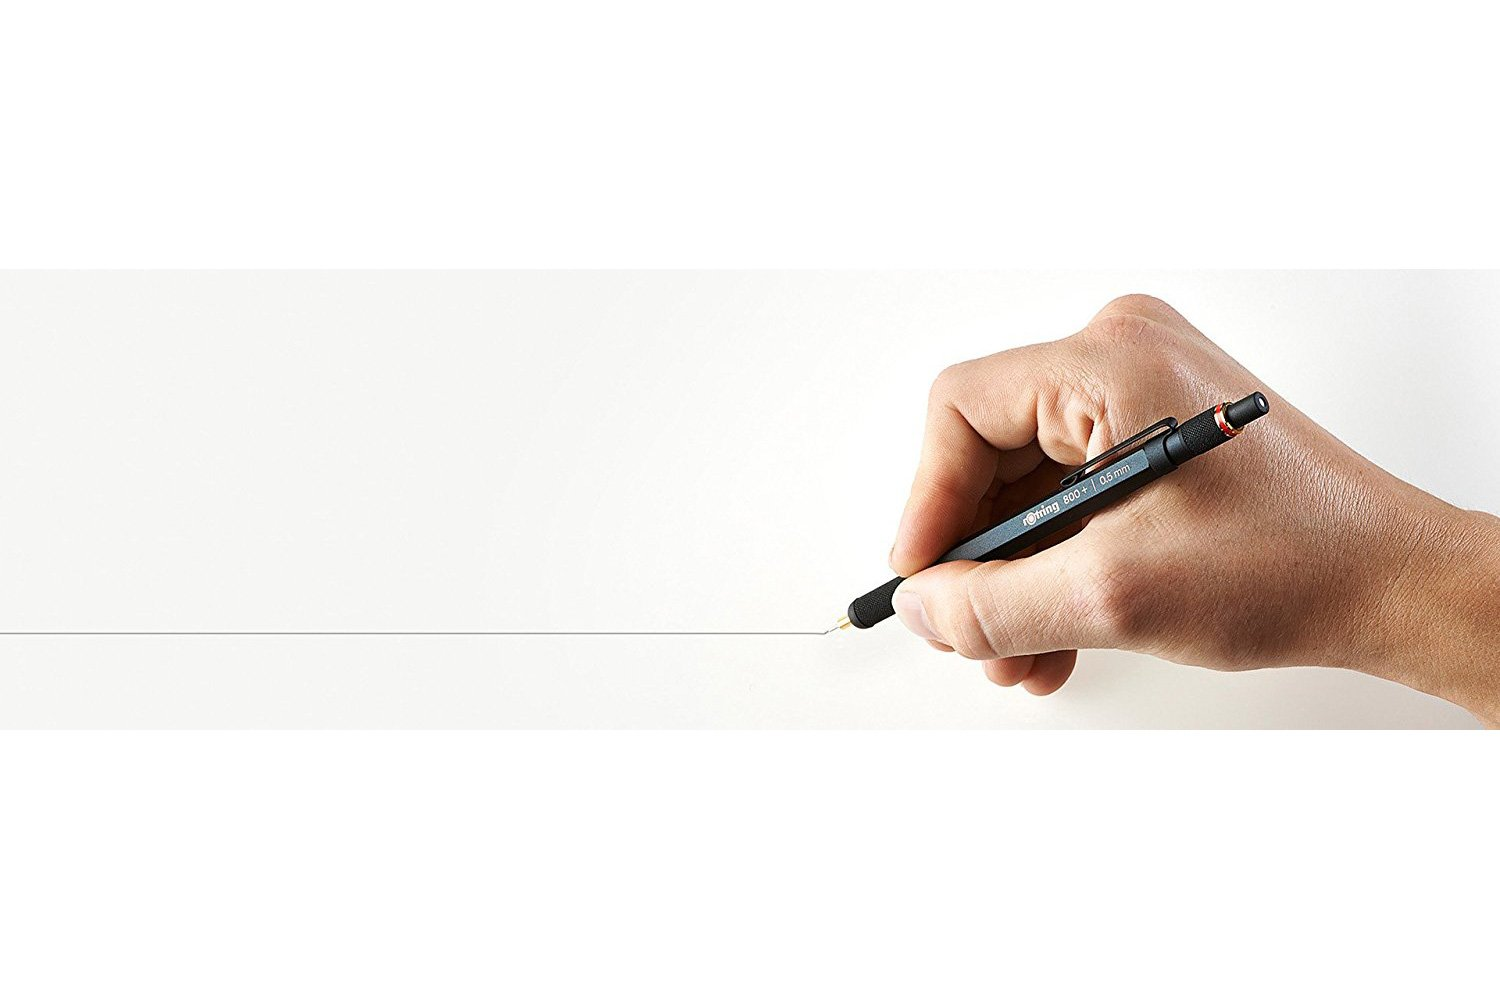 rOtring 1900181 800+ Mechanical Pencil and Touchscreen Stylus, 0.5 mm, Black Barrel by Rotring (Image #9)